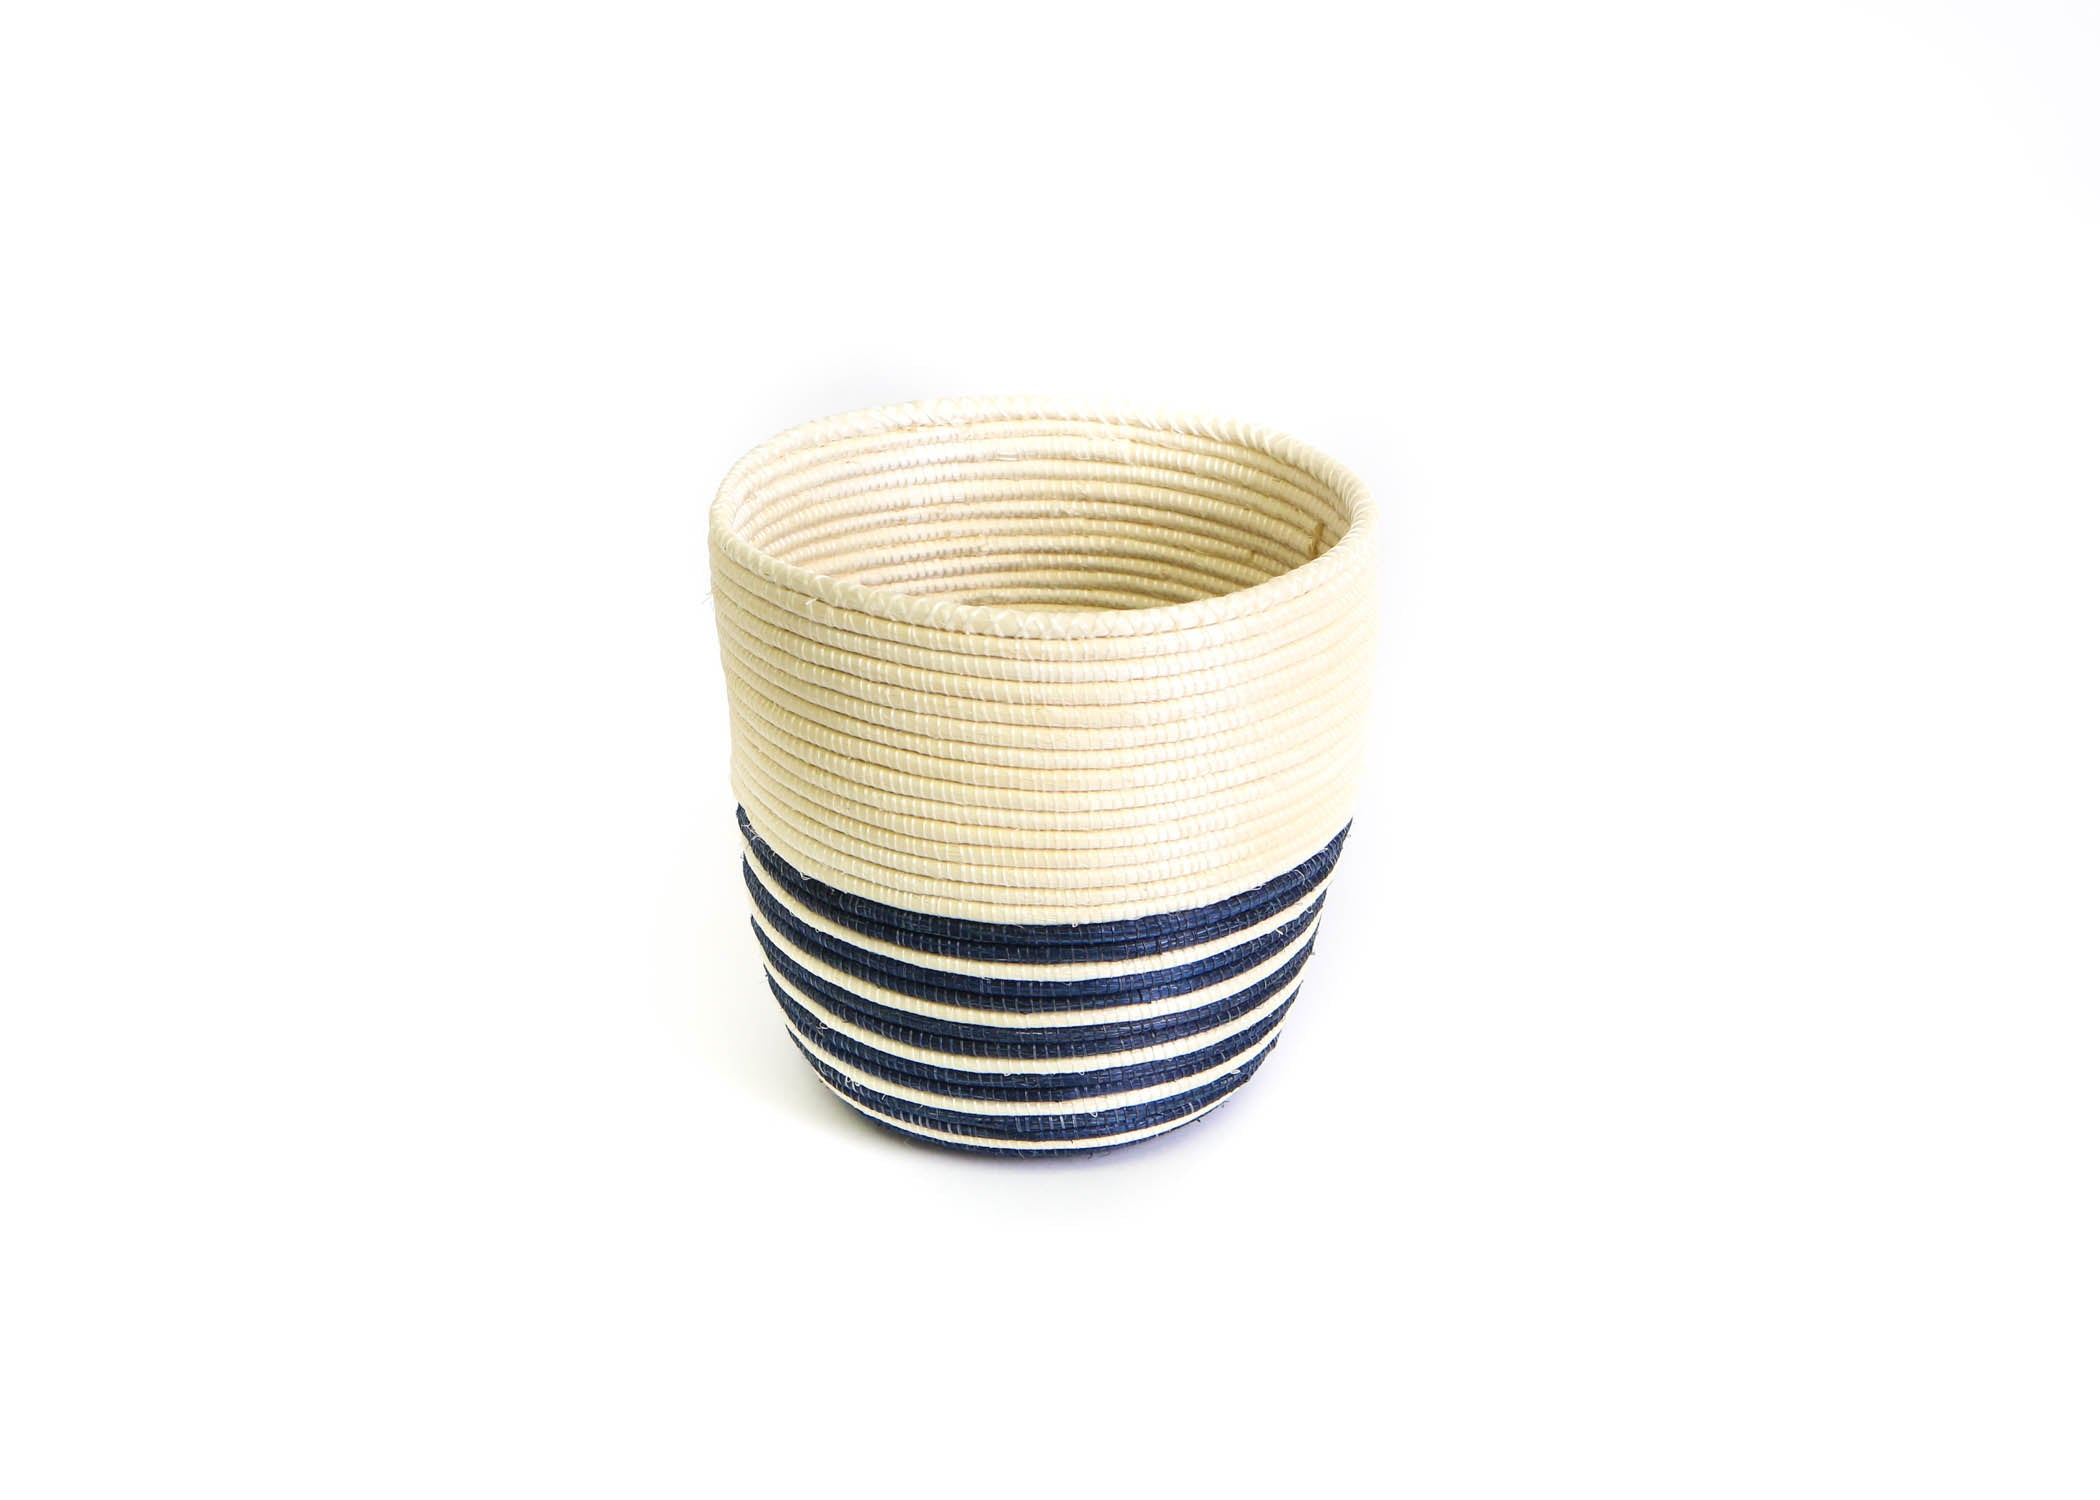 "6"" Natural and Navy Striped Planter - KAZI"